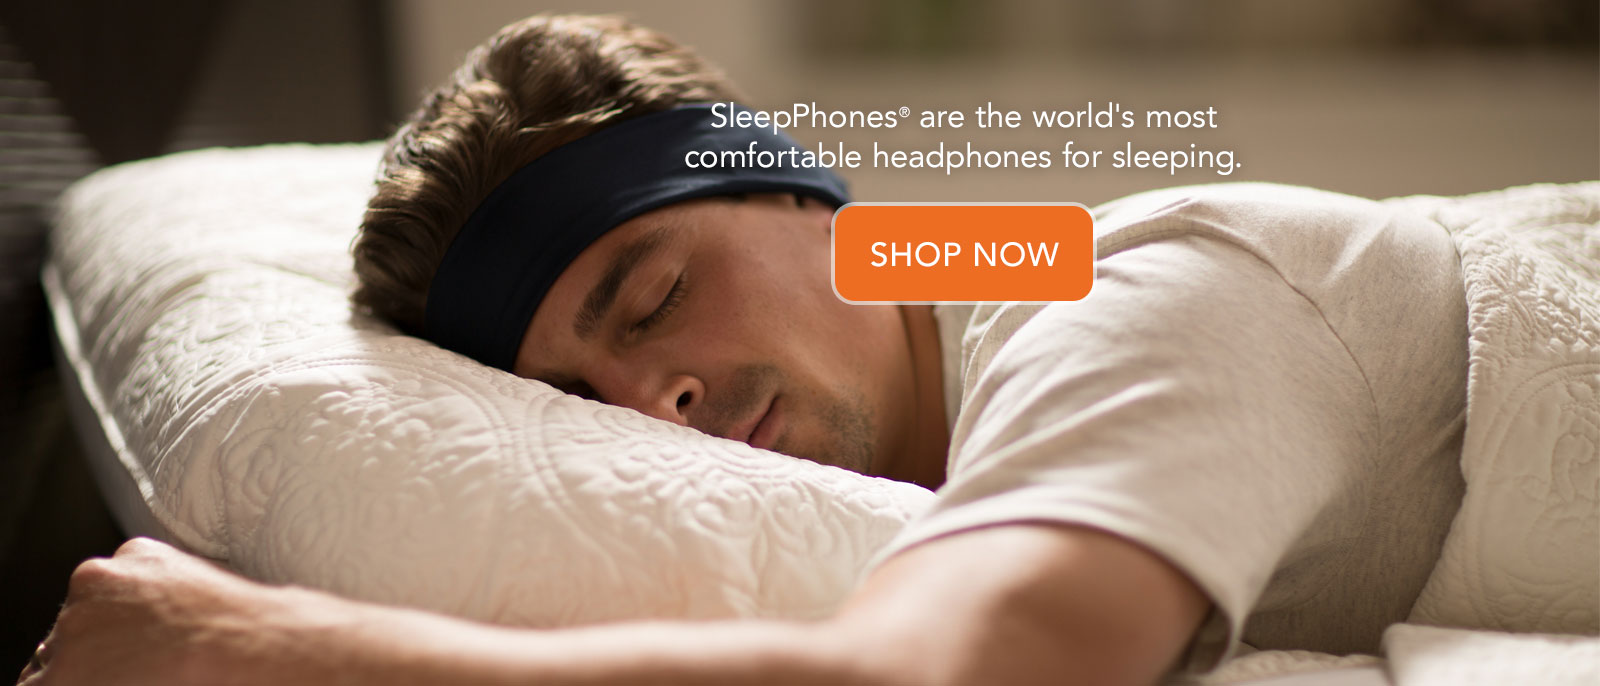 Shop now AcousticSheep SleepPhones are the world's most comfortable headphones for sleeping. Man sleeping on side with black sleep headband headphones.